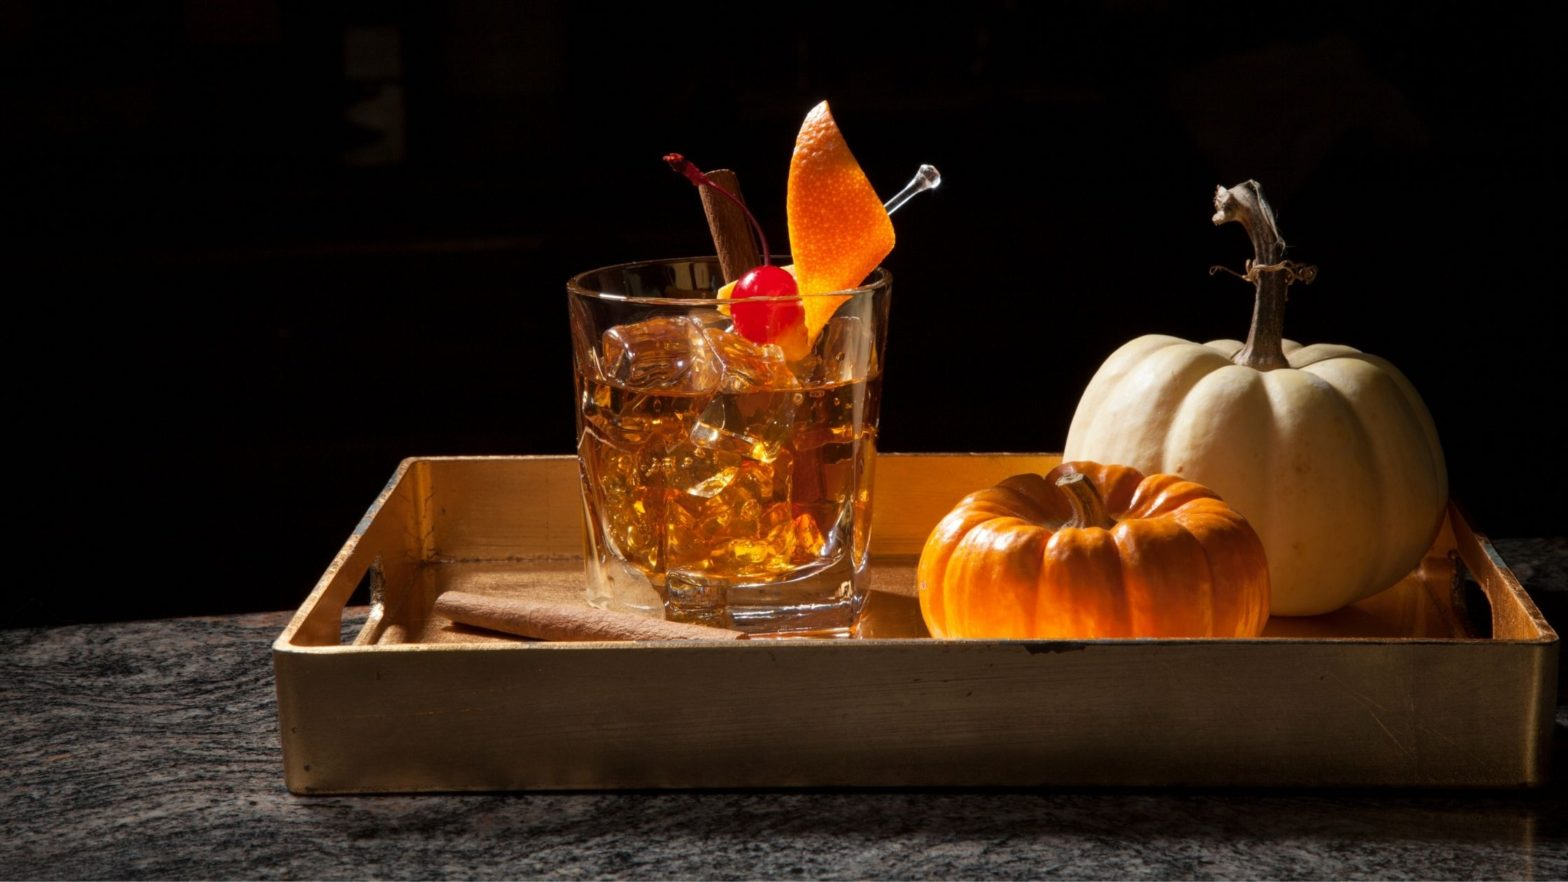 Fall tray with a glass of whiskey and pumpkins